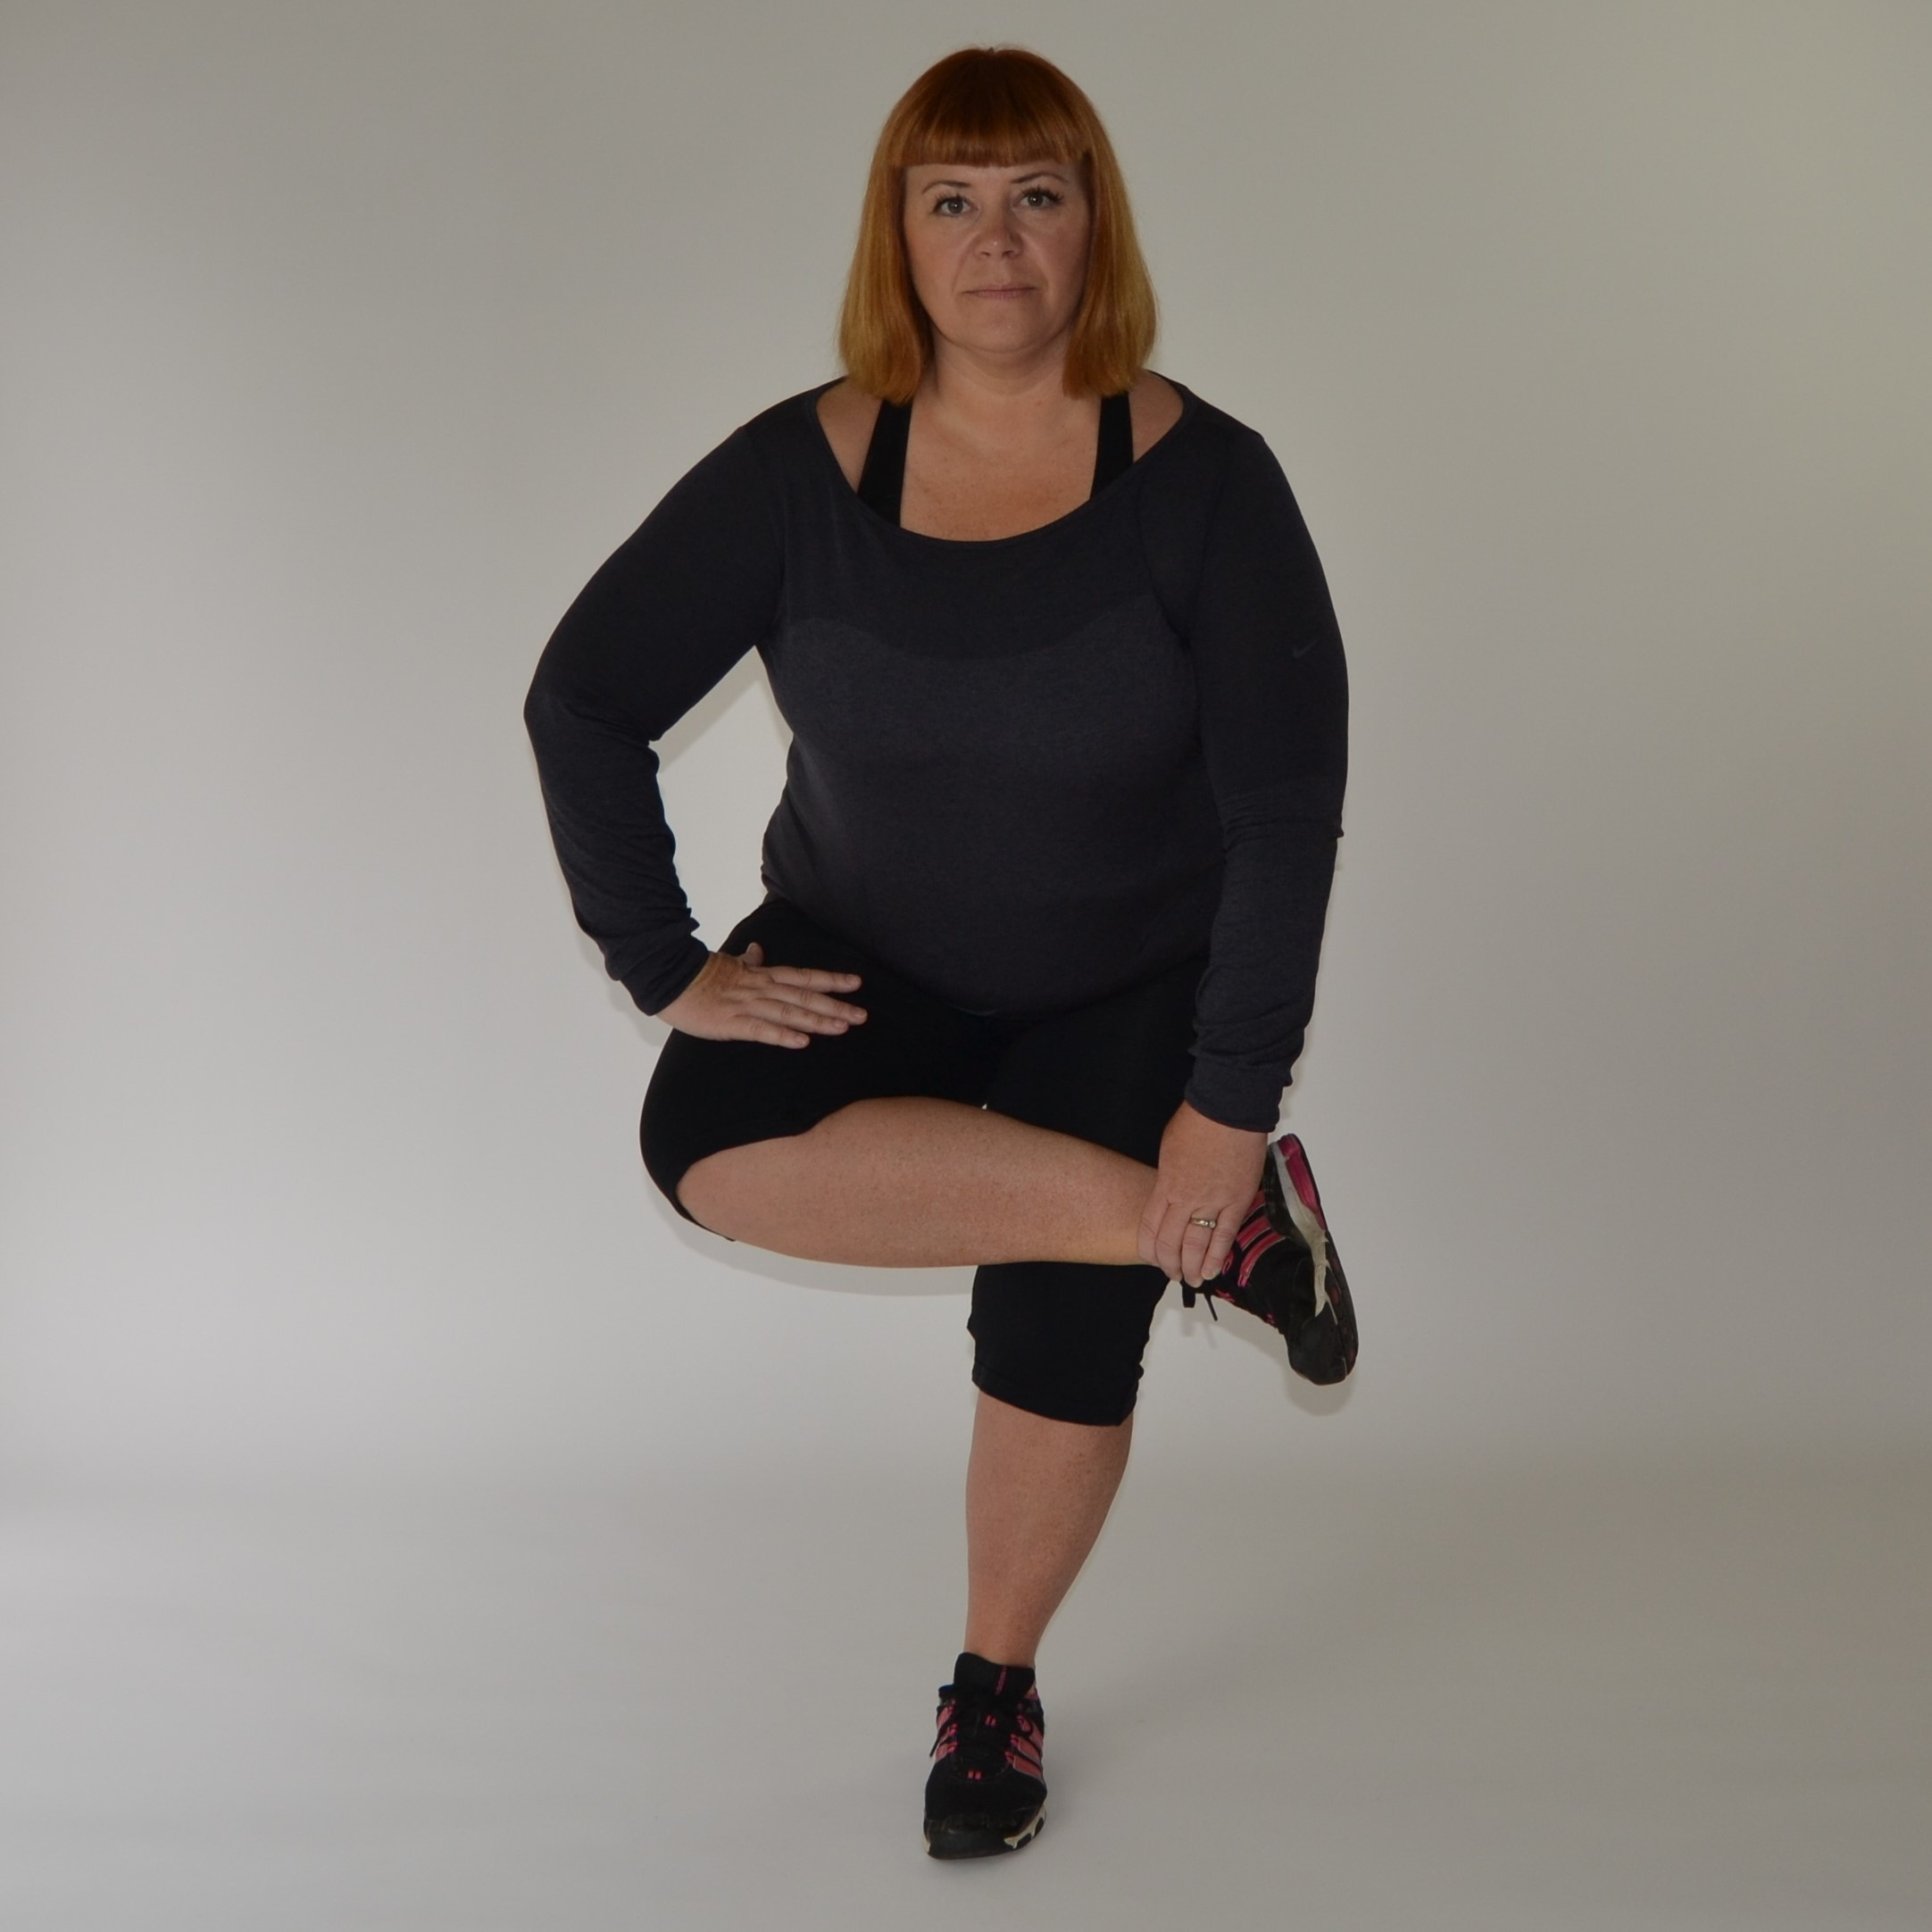 Big Fit Girl Stretching Routine